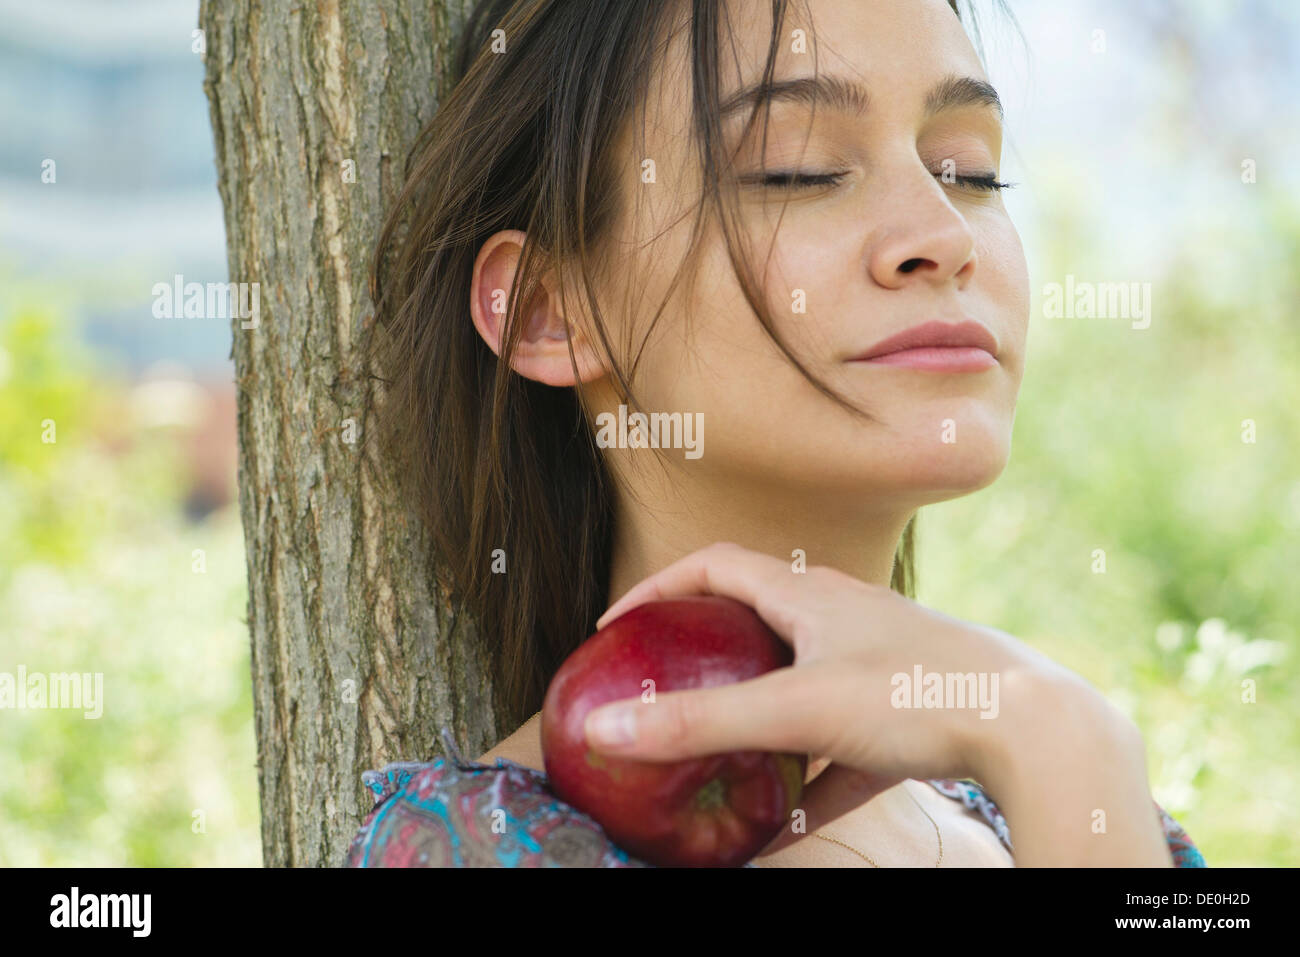 Woman relaxing outdoors with eyes closed, holding apple - Stock Image